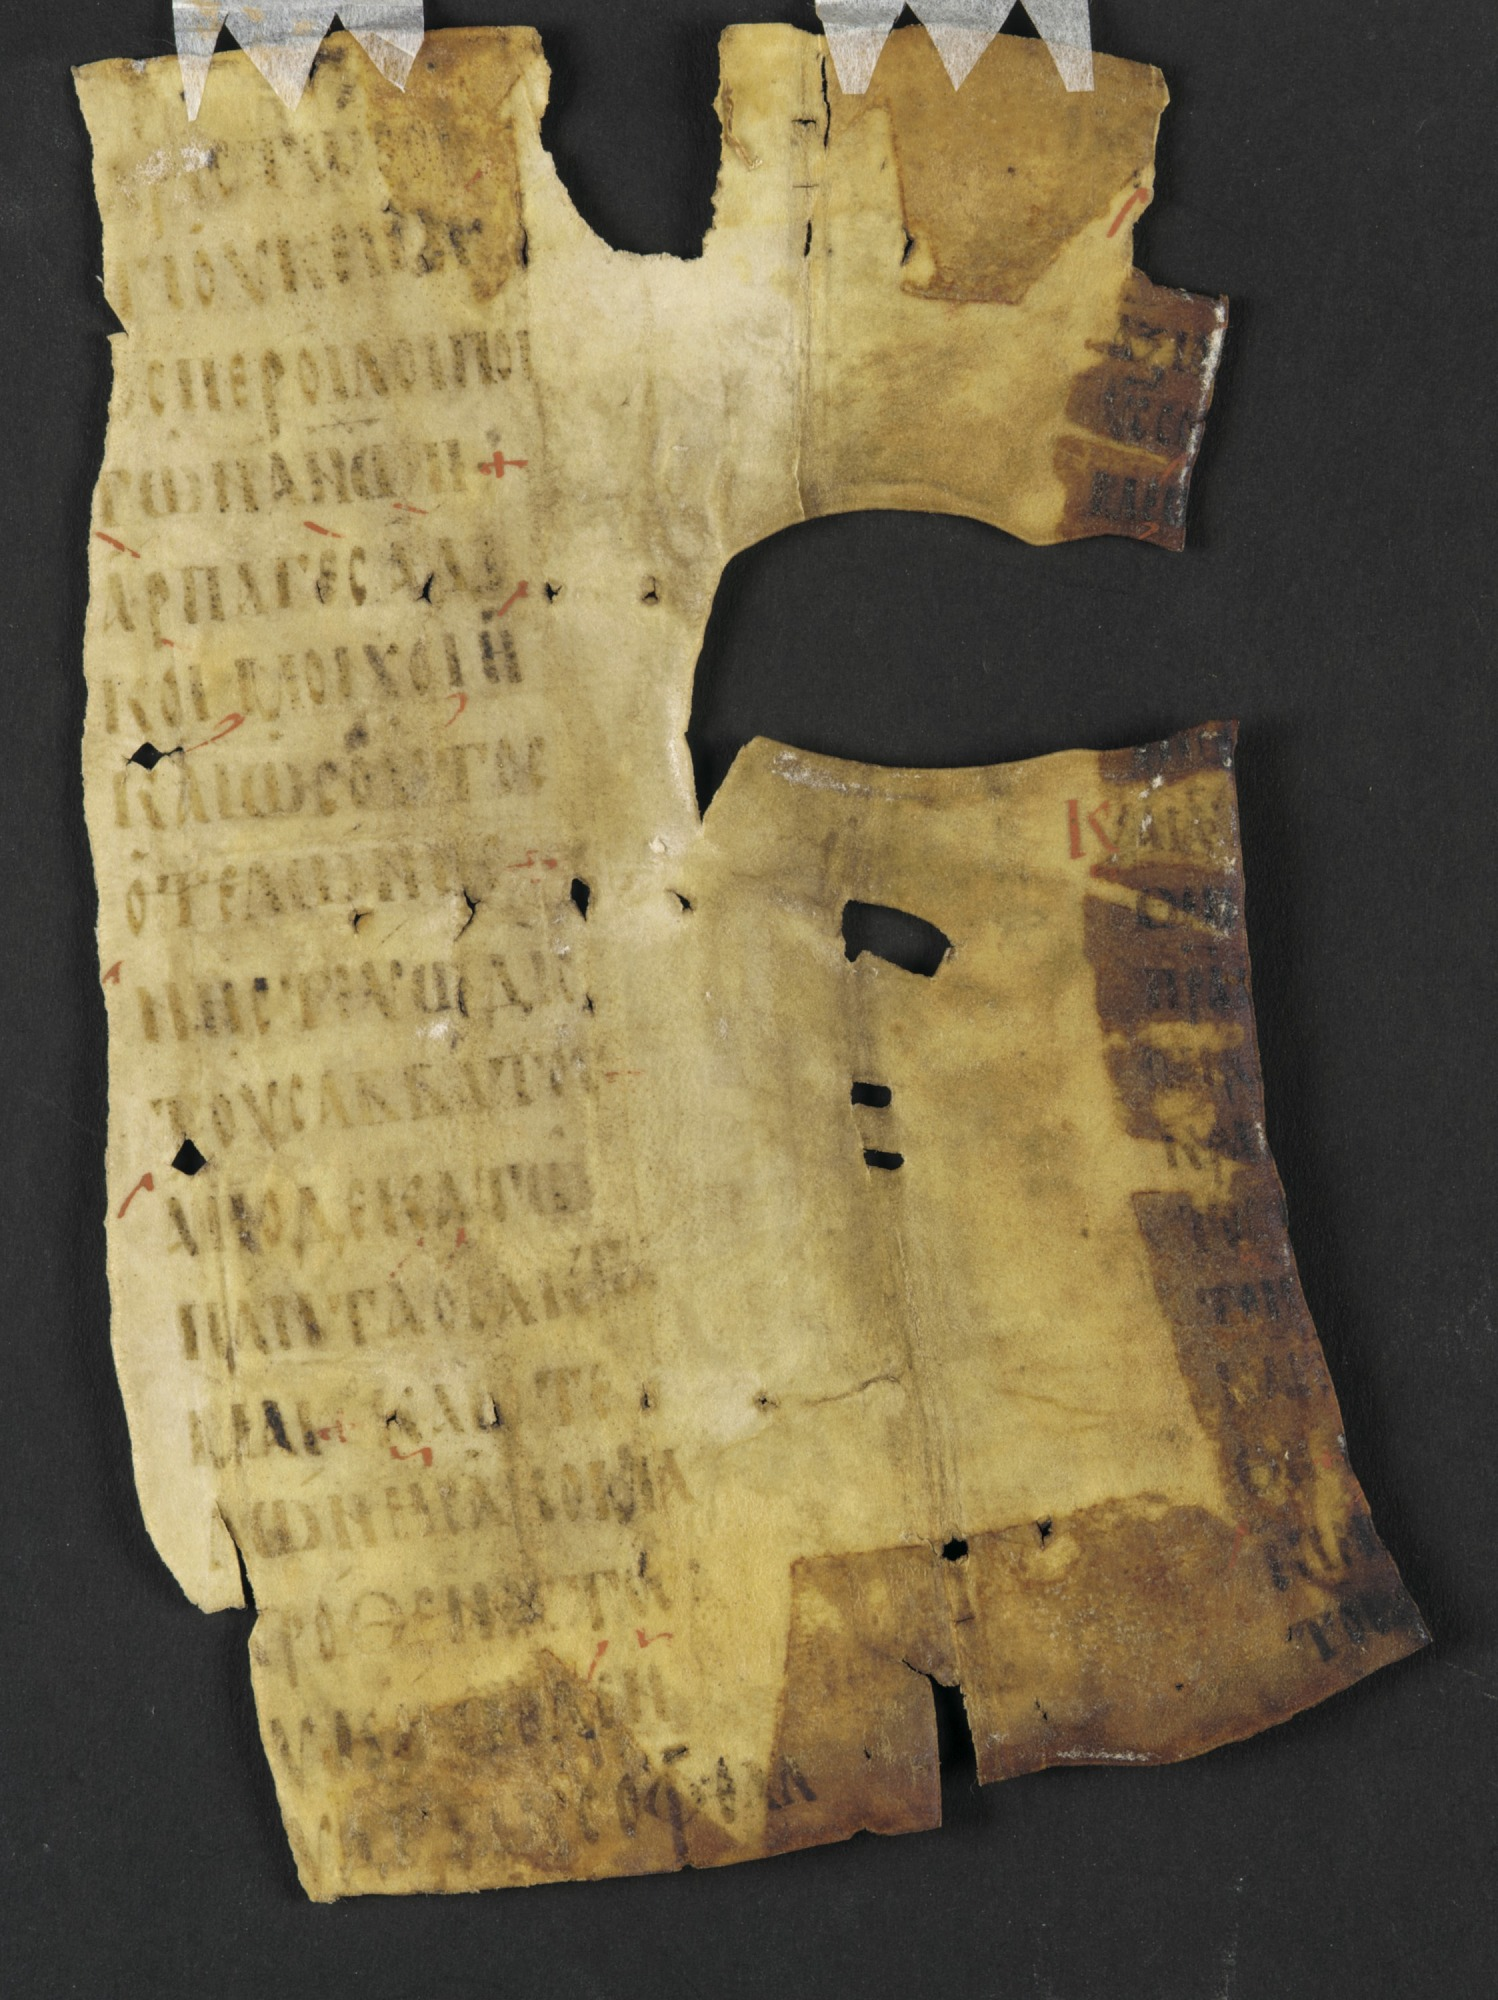 : Fragment of two conjugate leaves from a Service-book: recto, St. Matthew, XV, 23-26; verso, St. Luke, XVIII, 11-13